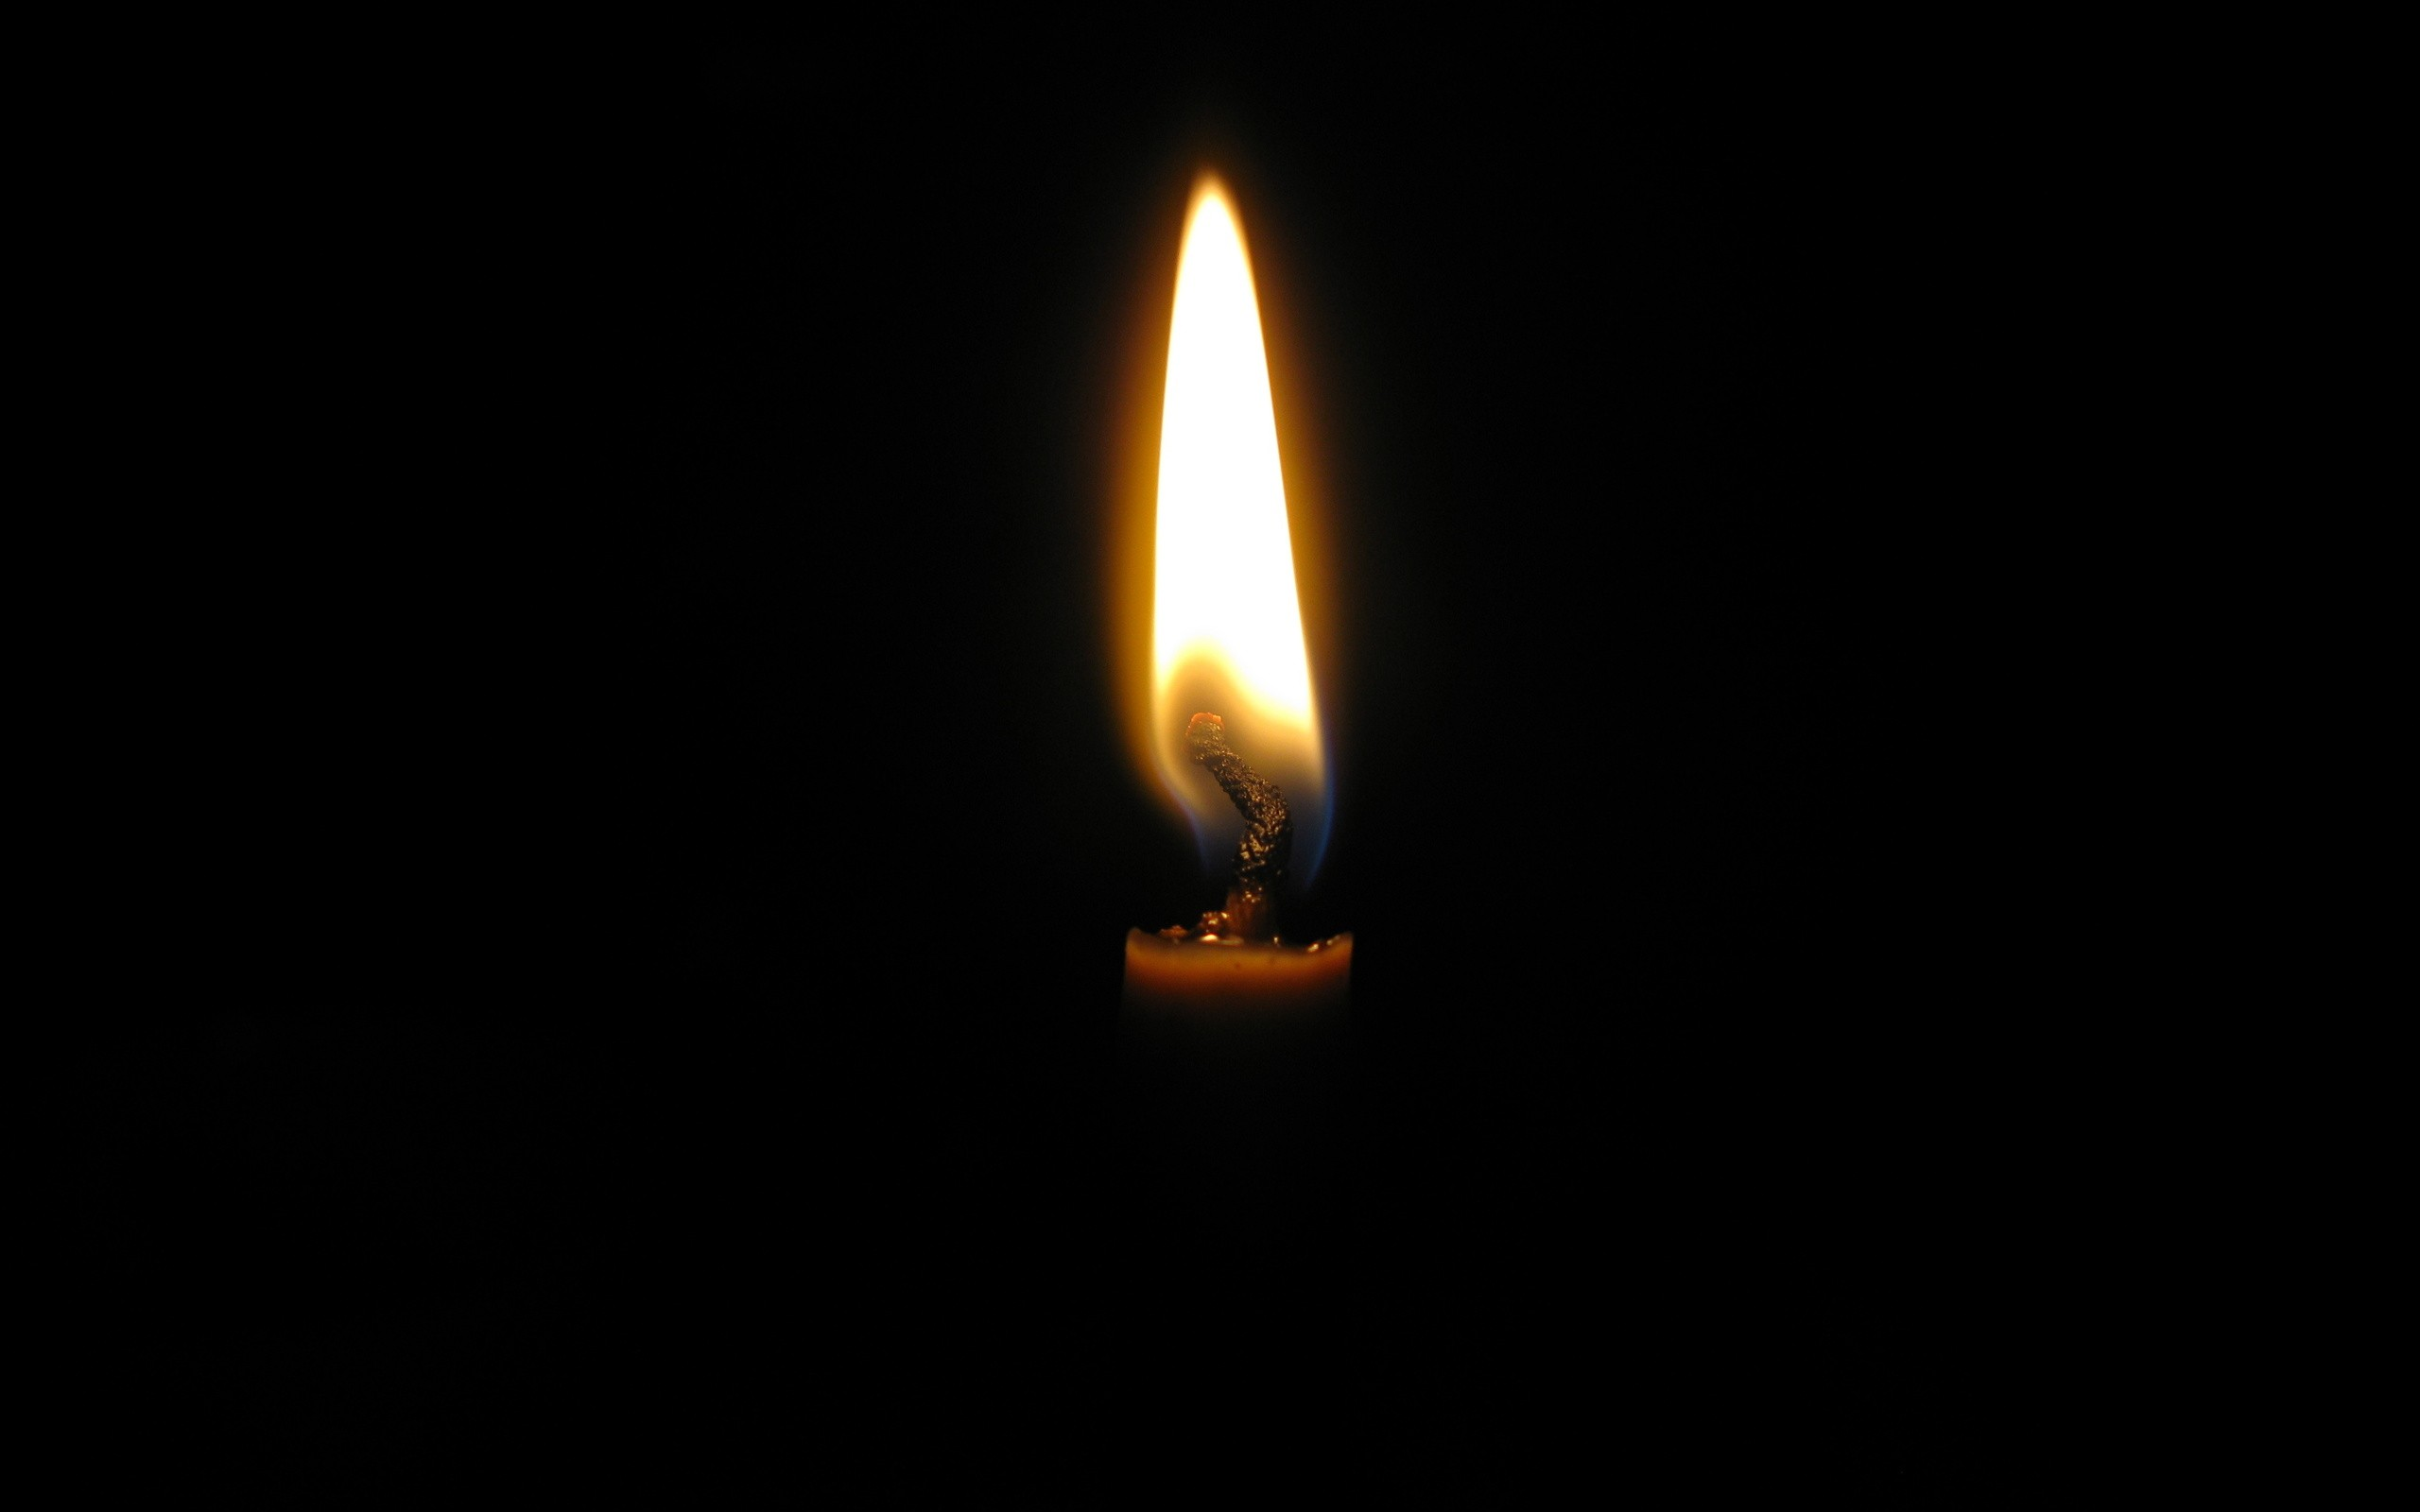 burning candle Wallpaper Background 38417 2560x1600